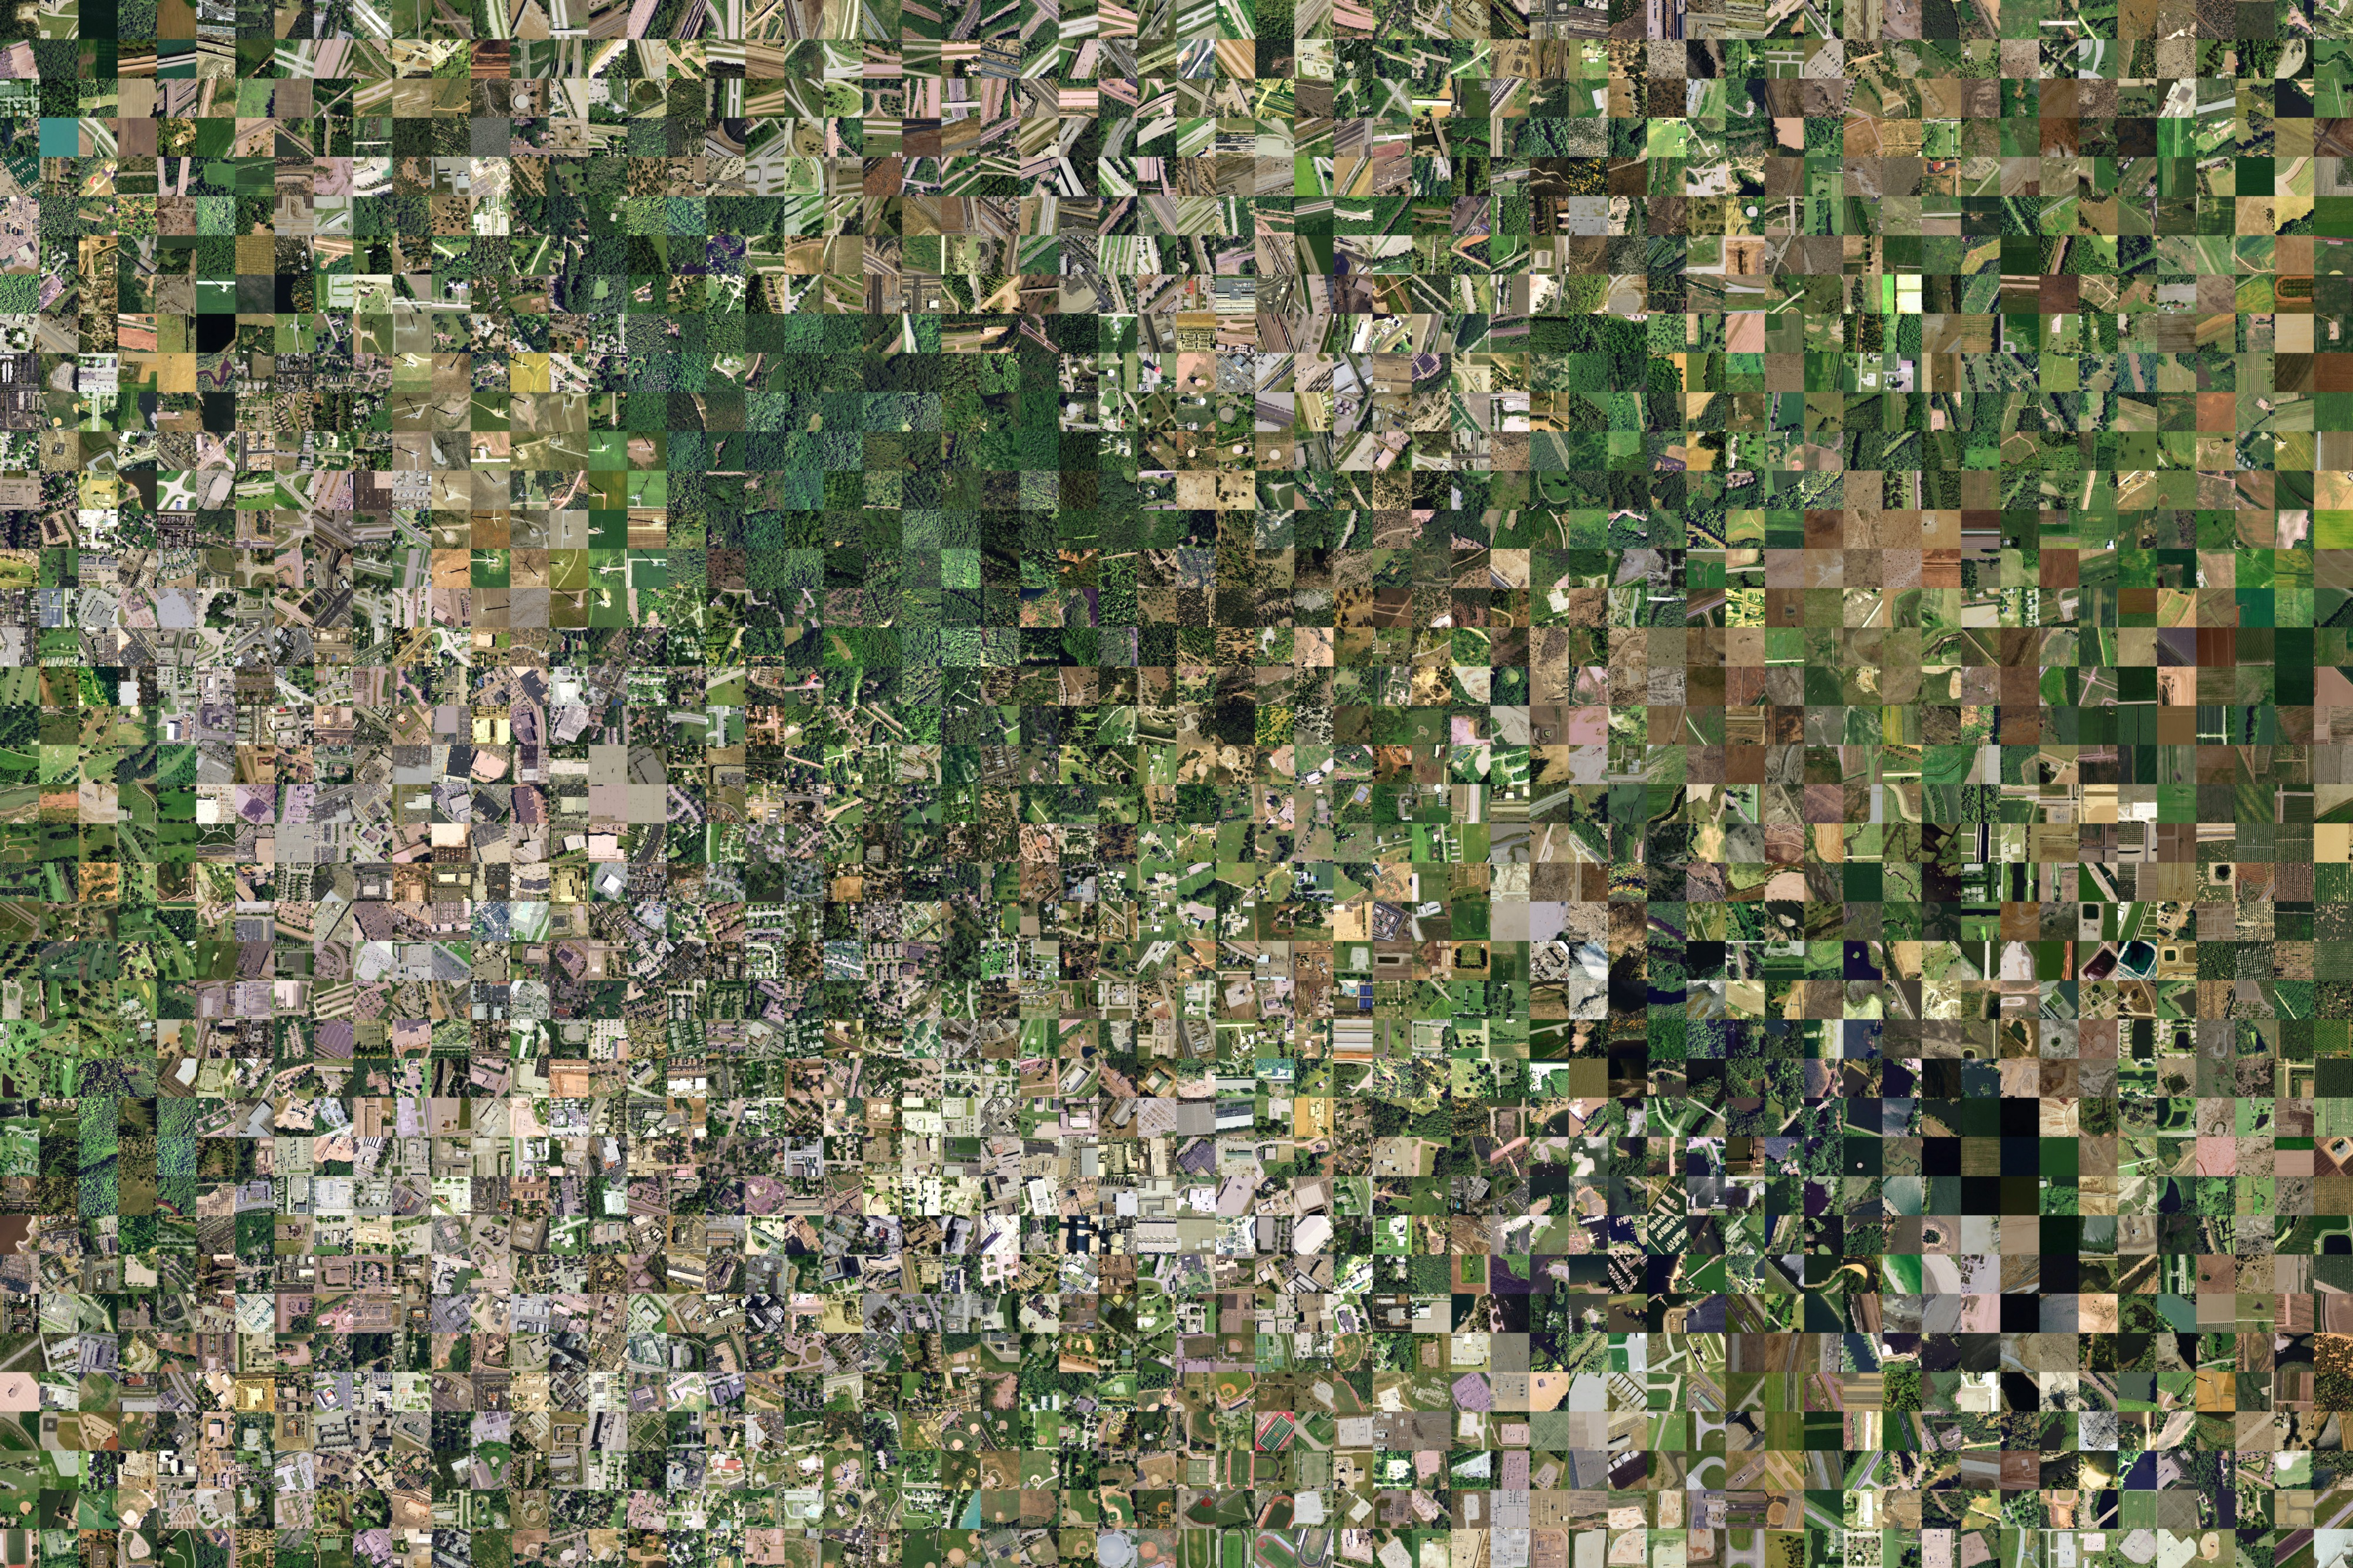 Images of the United States from the National Aerial Imagery Program, arranged by visual similarity.